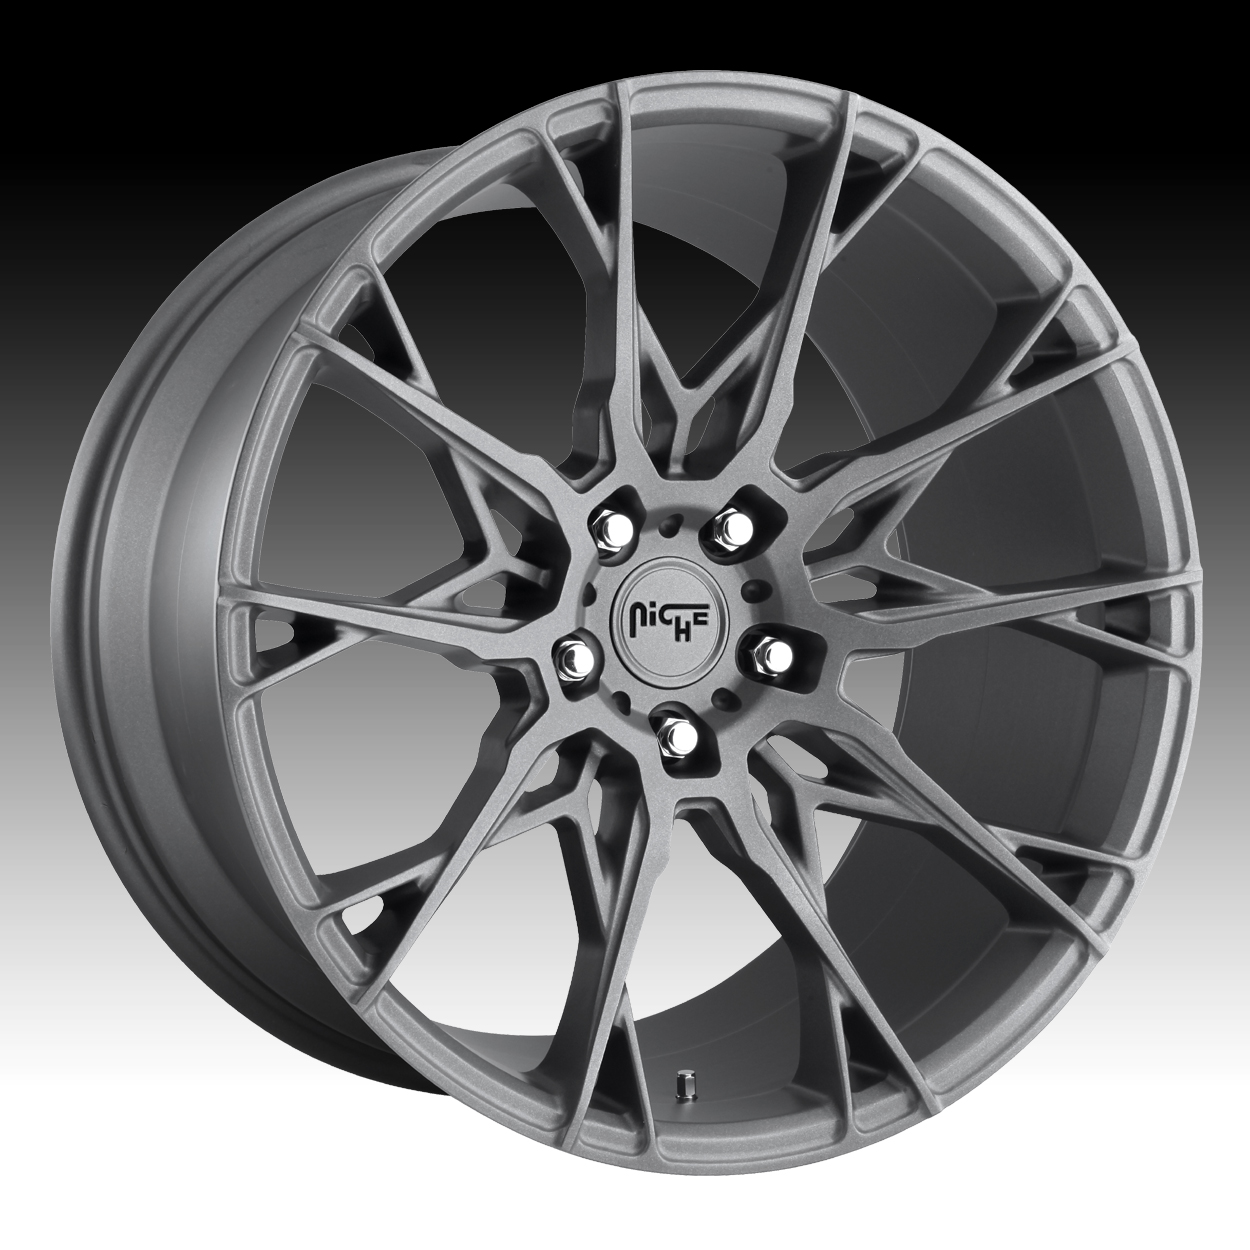 Niche Road Wheels >> Niche Staccato M182 Matte Anthracite Custom Wheels Rims M182